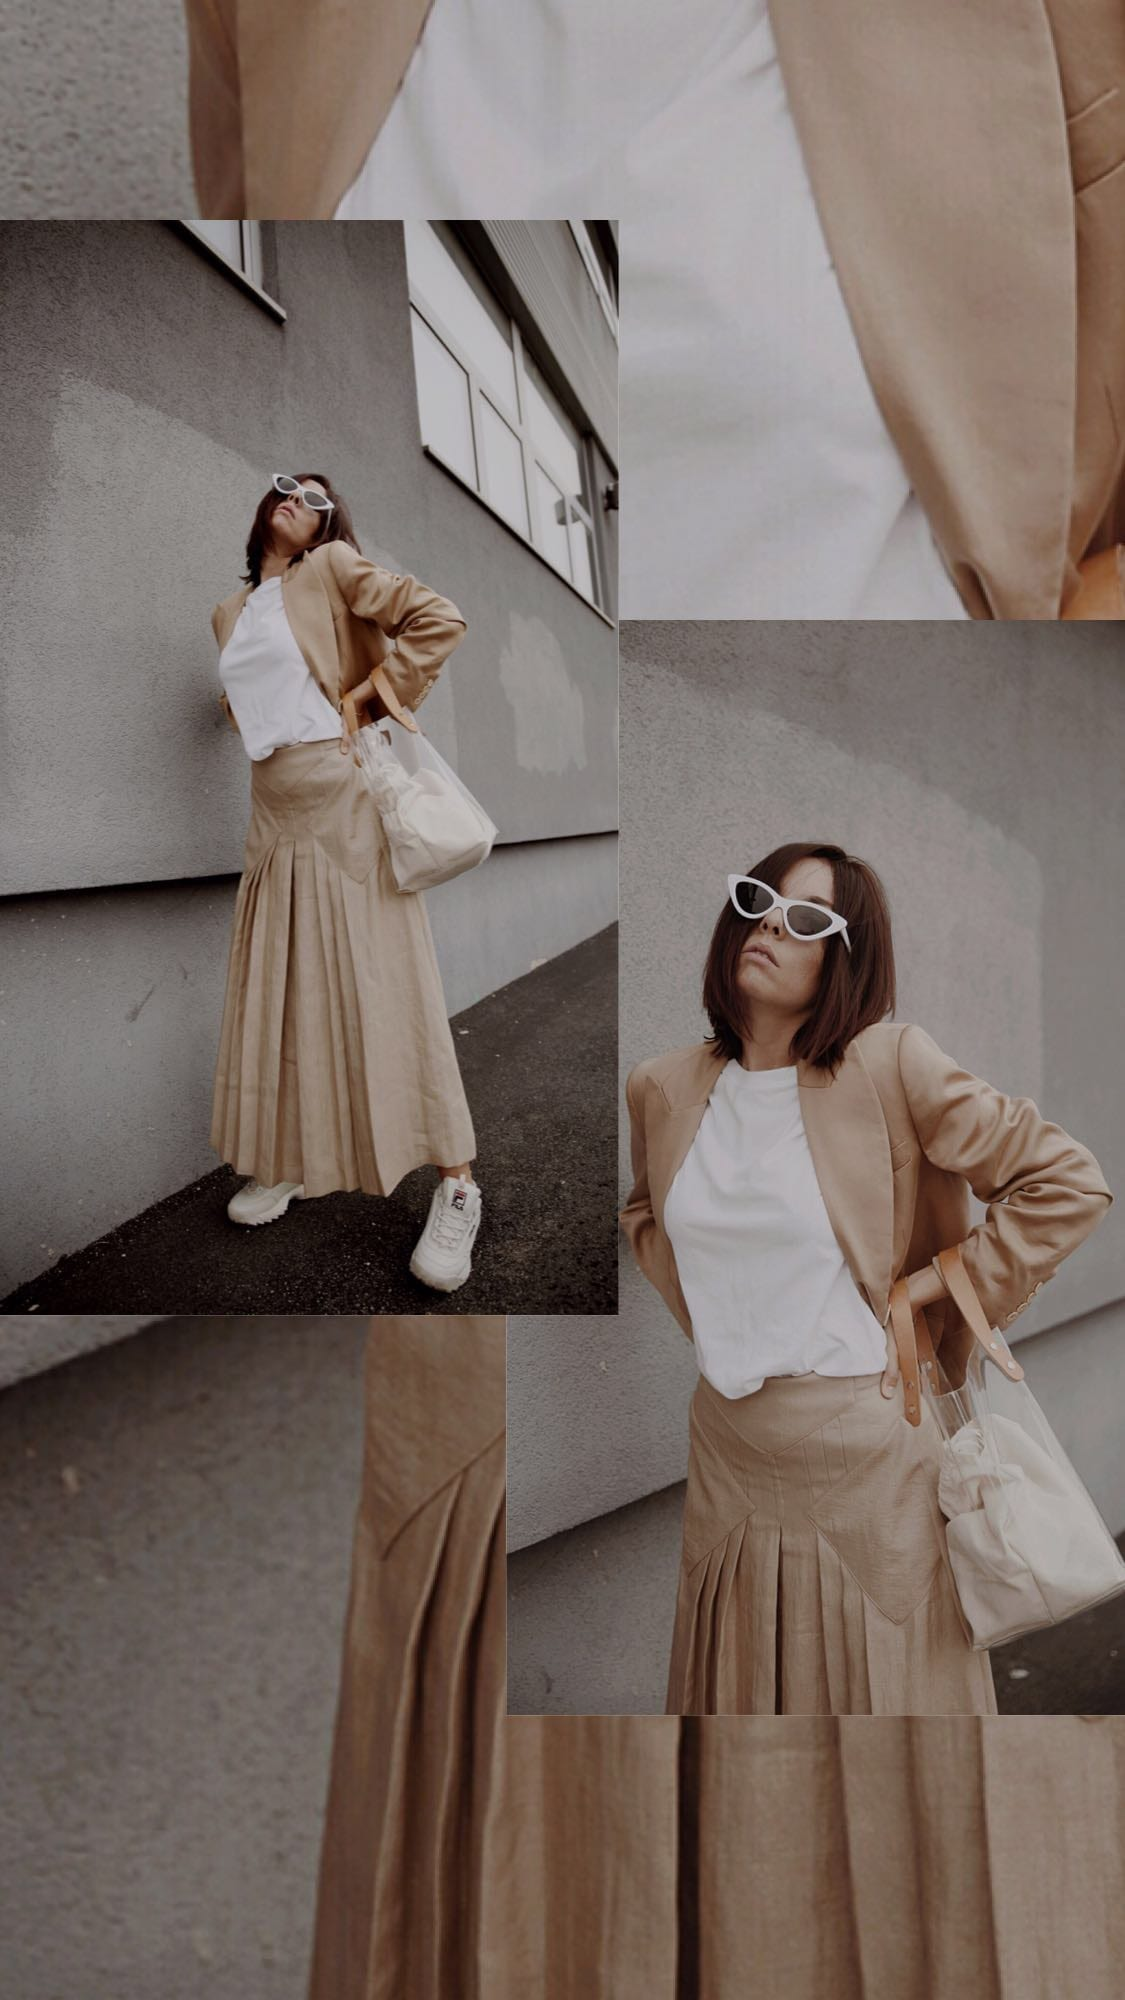 Streetwear culture, theladycracy.it, massimo dutti outfit 2018, fila scarpe outfit 2018, outfit estate 2018, minimal blogger 2018, beige aesthetic, fashion editorial blog 2018, elisa bellino, come vestirsi milano 2018, stile minimal come vestirsi, borsa plastica 2018